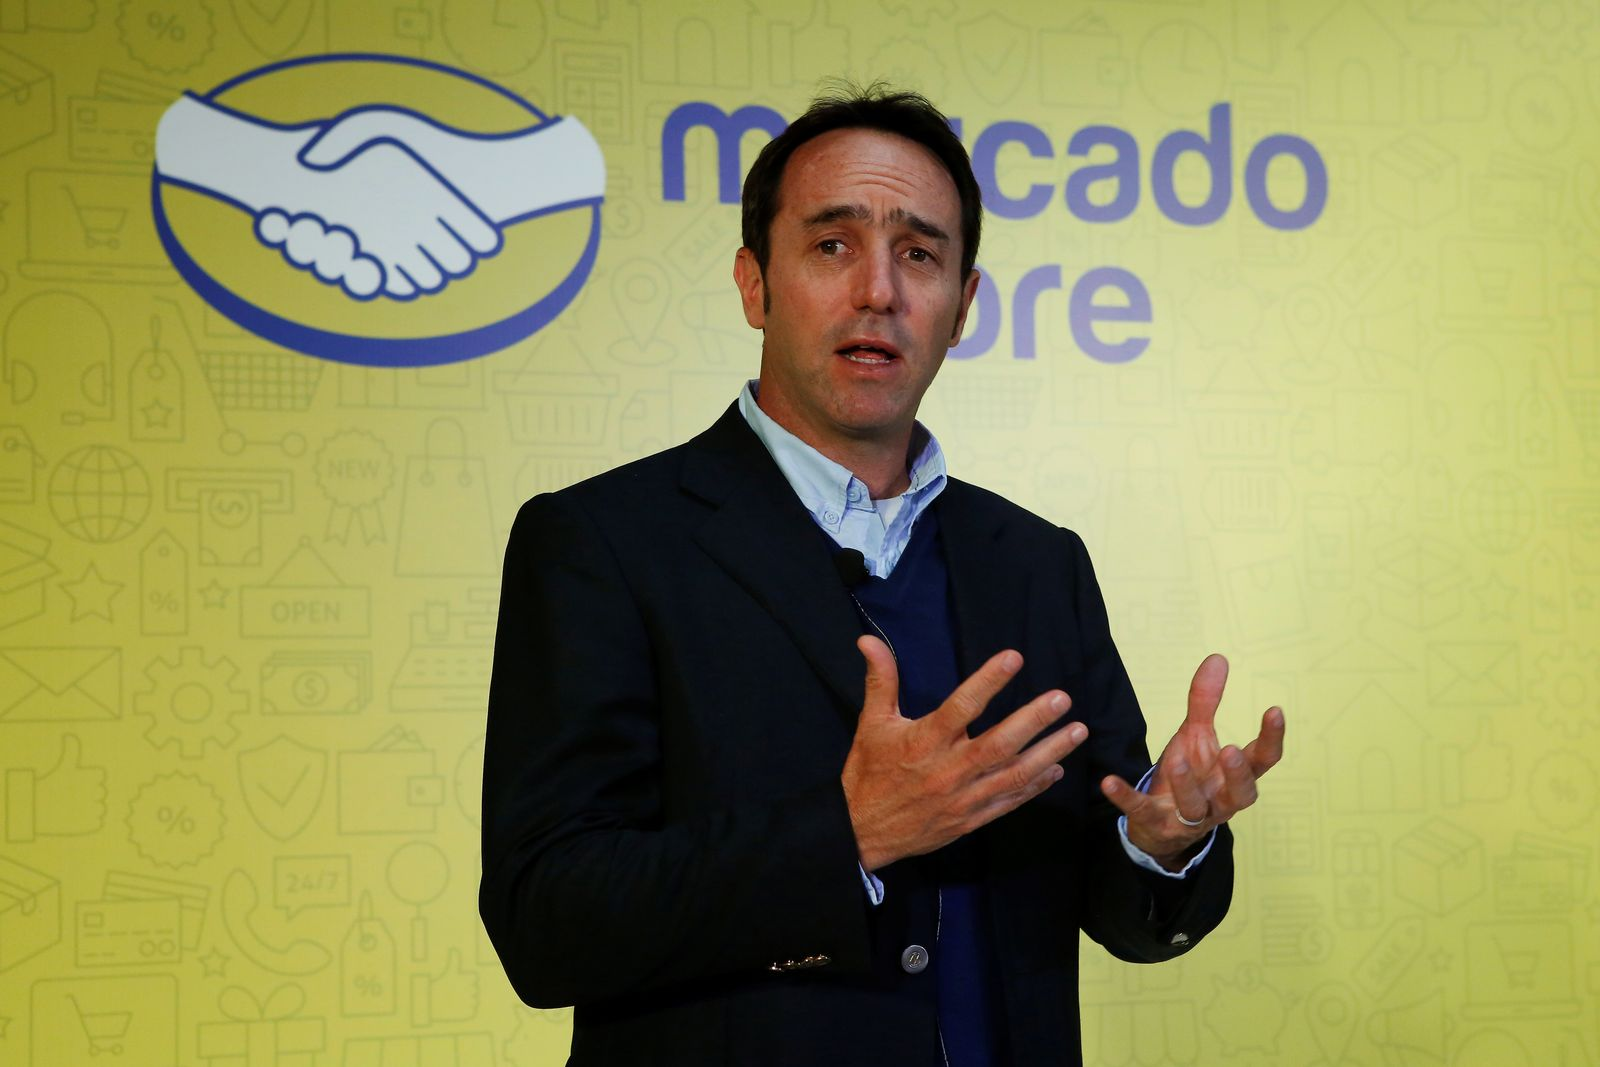 Founder and CEO of e-commerce platform MercadoLibre Marcos Galperin speaks during a news conference in Mexico City